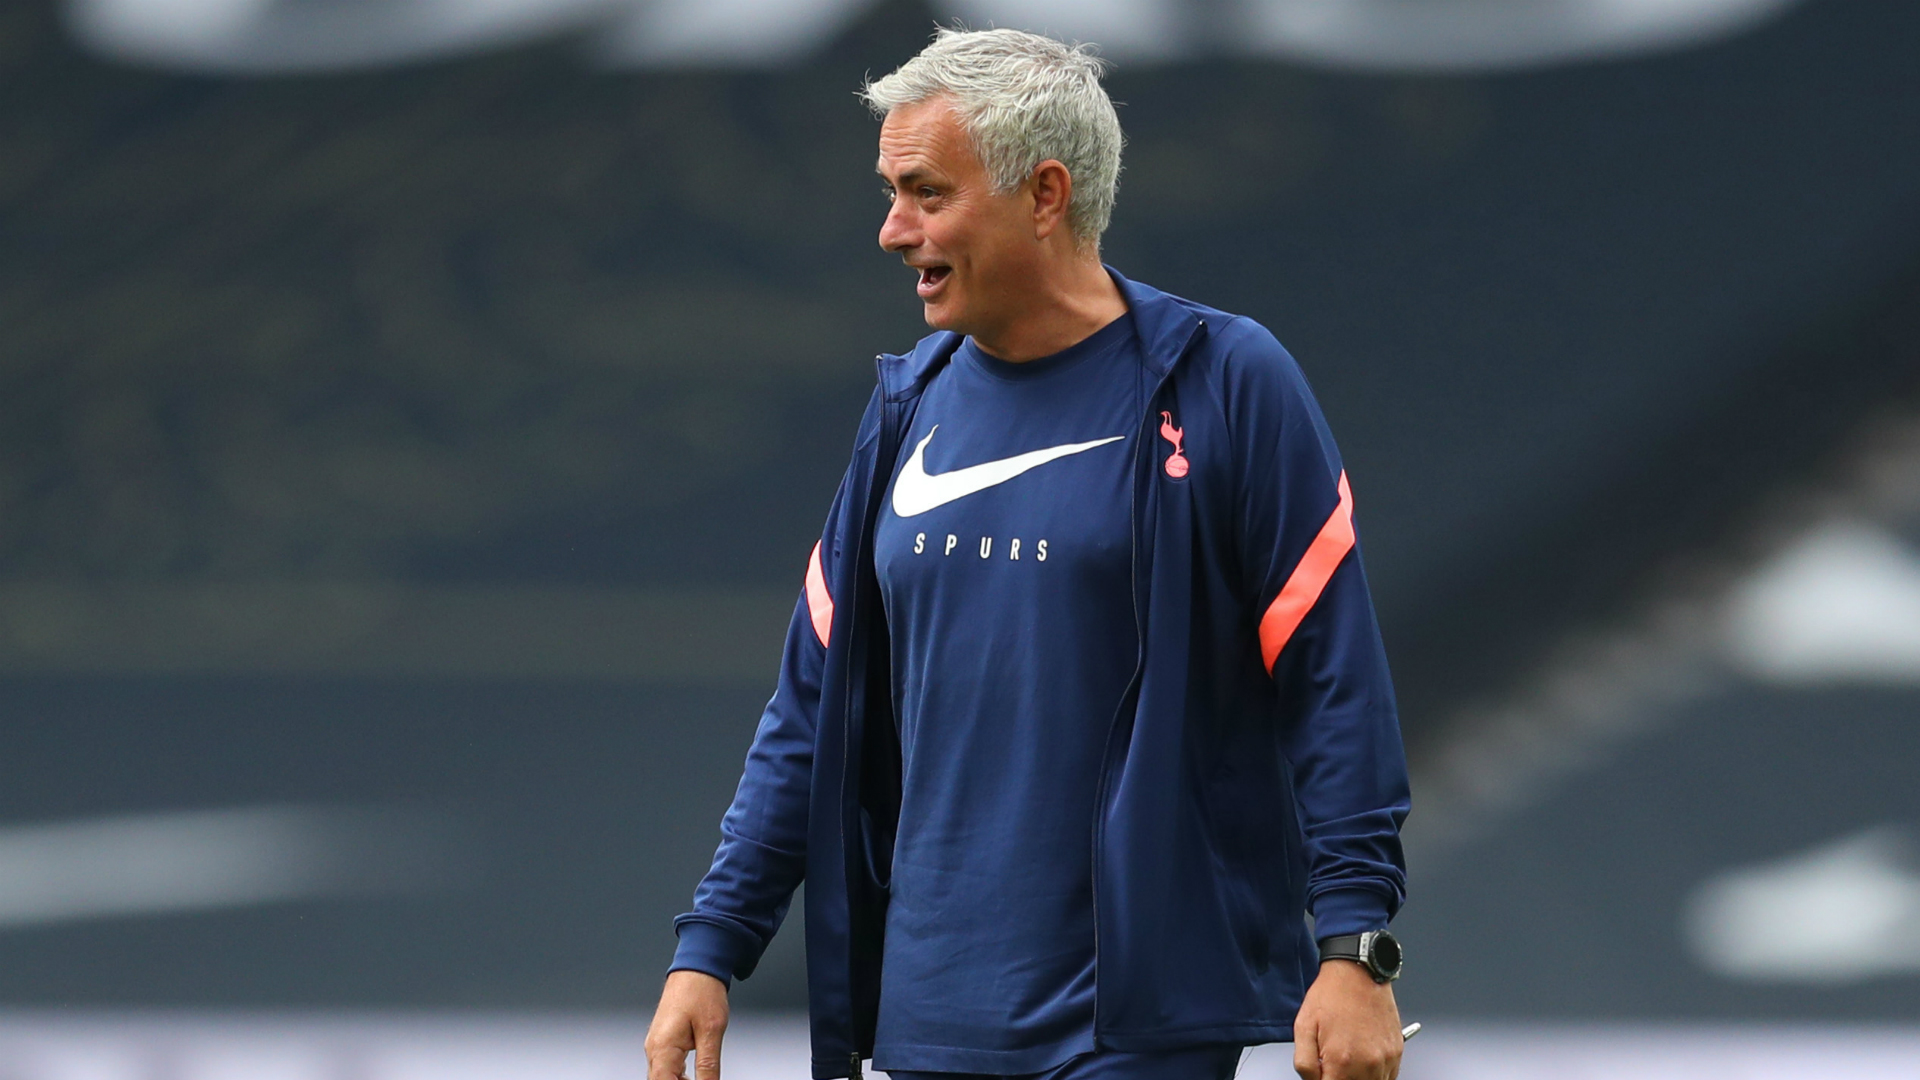 Mourinho 'cannot take risks' with Shkendija after Plovdiv scare